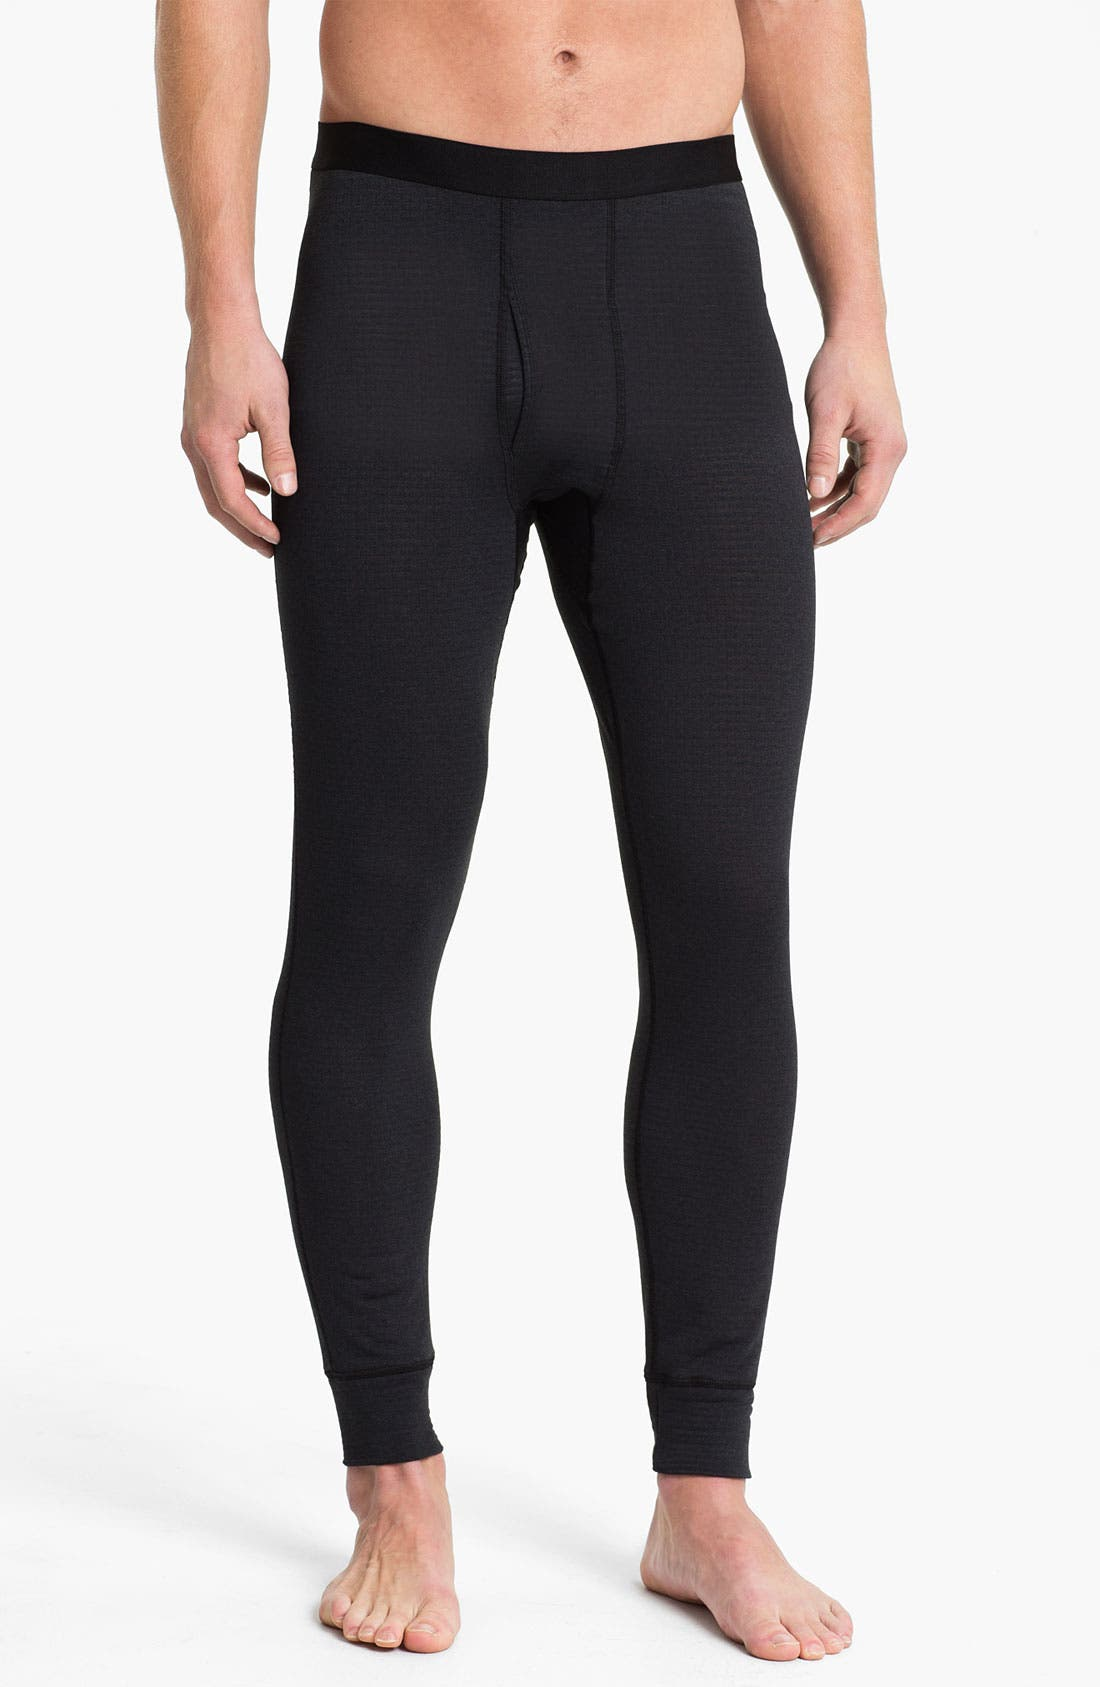 'Capilene<sup>®</sup> 4' Expedition Weight Base Layer Pants,                         Main,                         color, Black